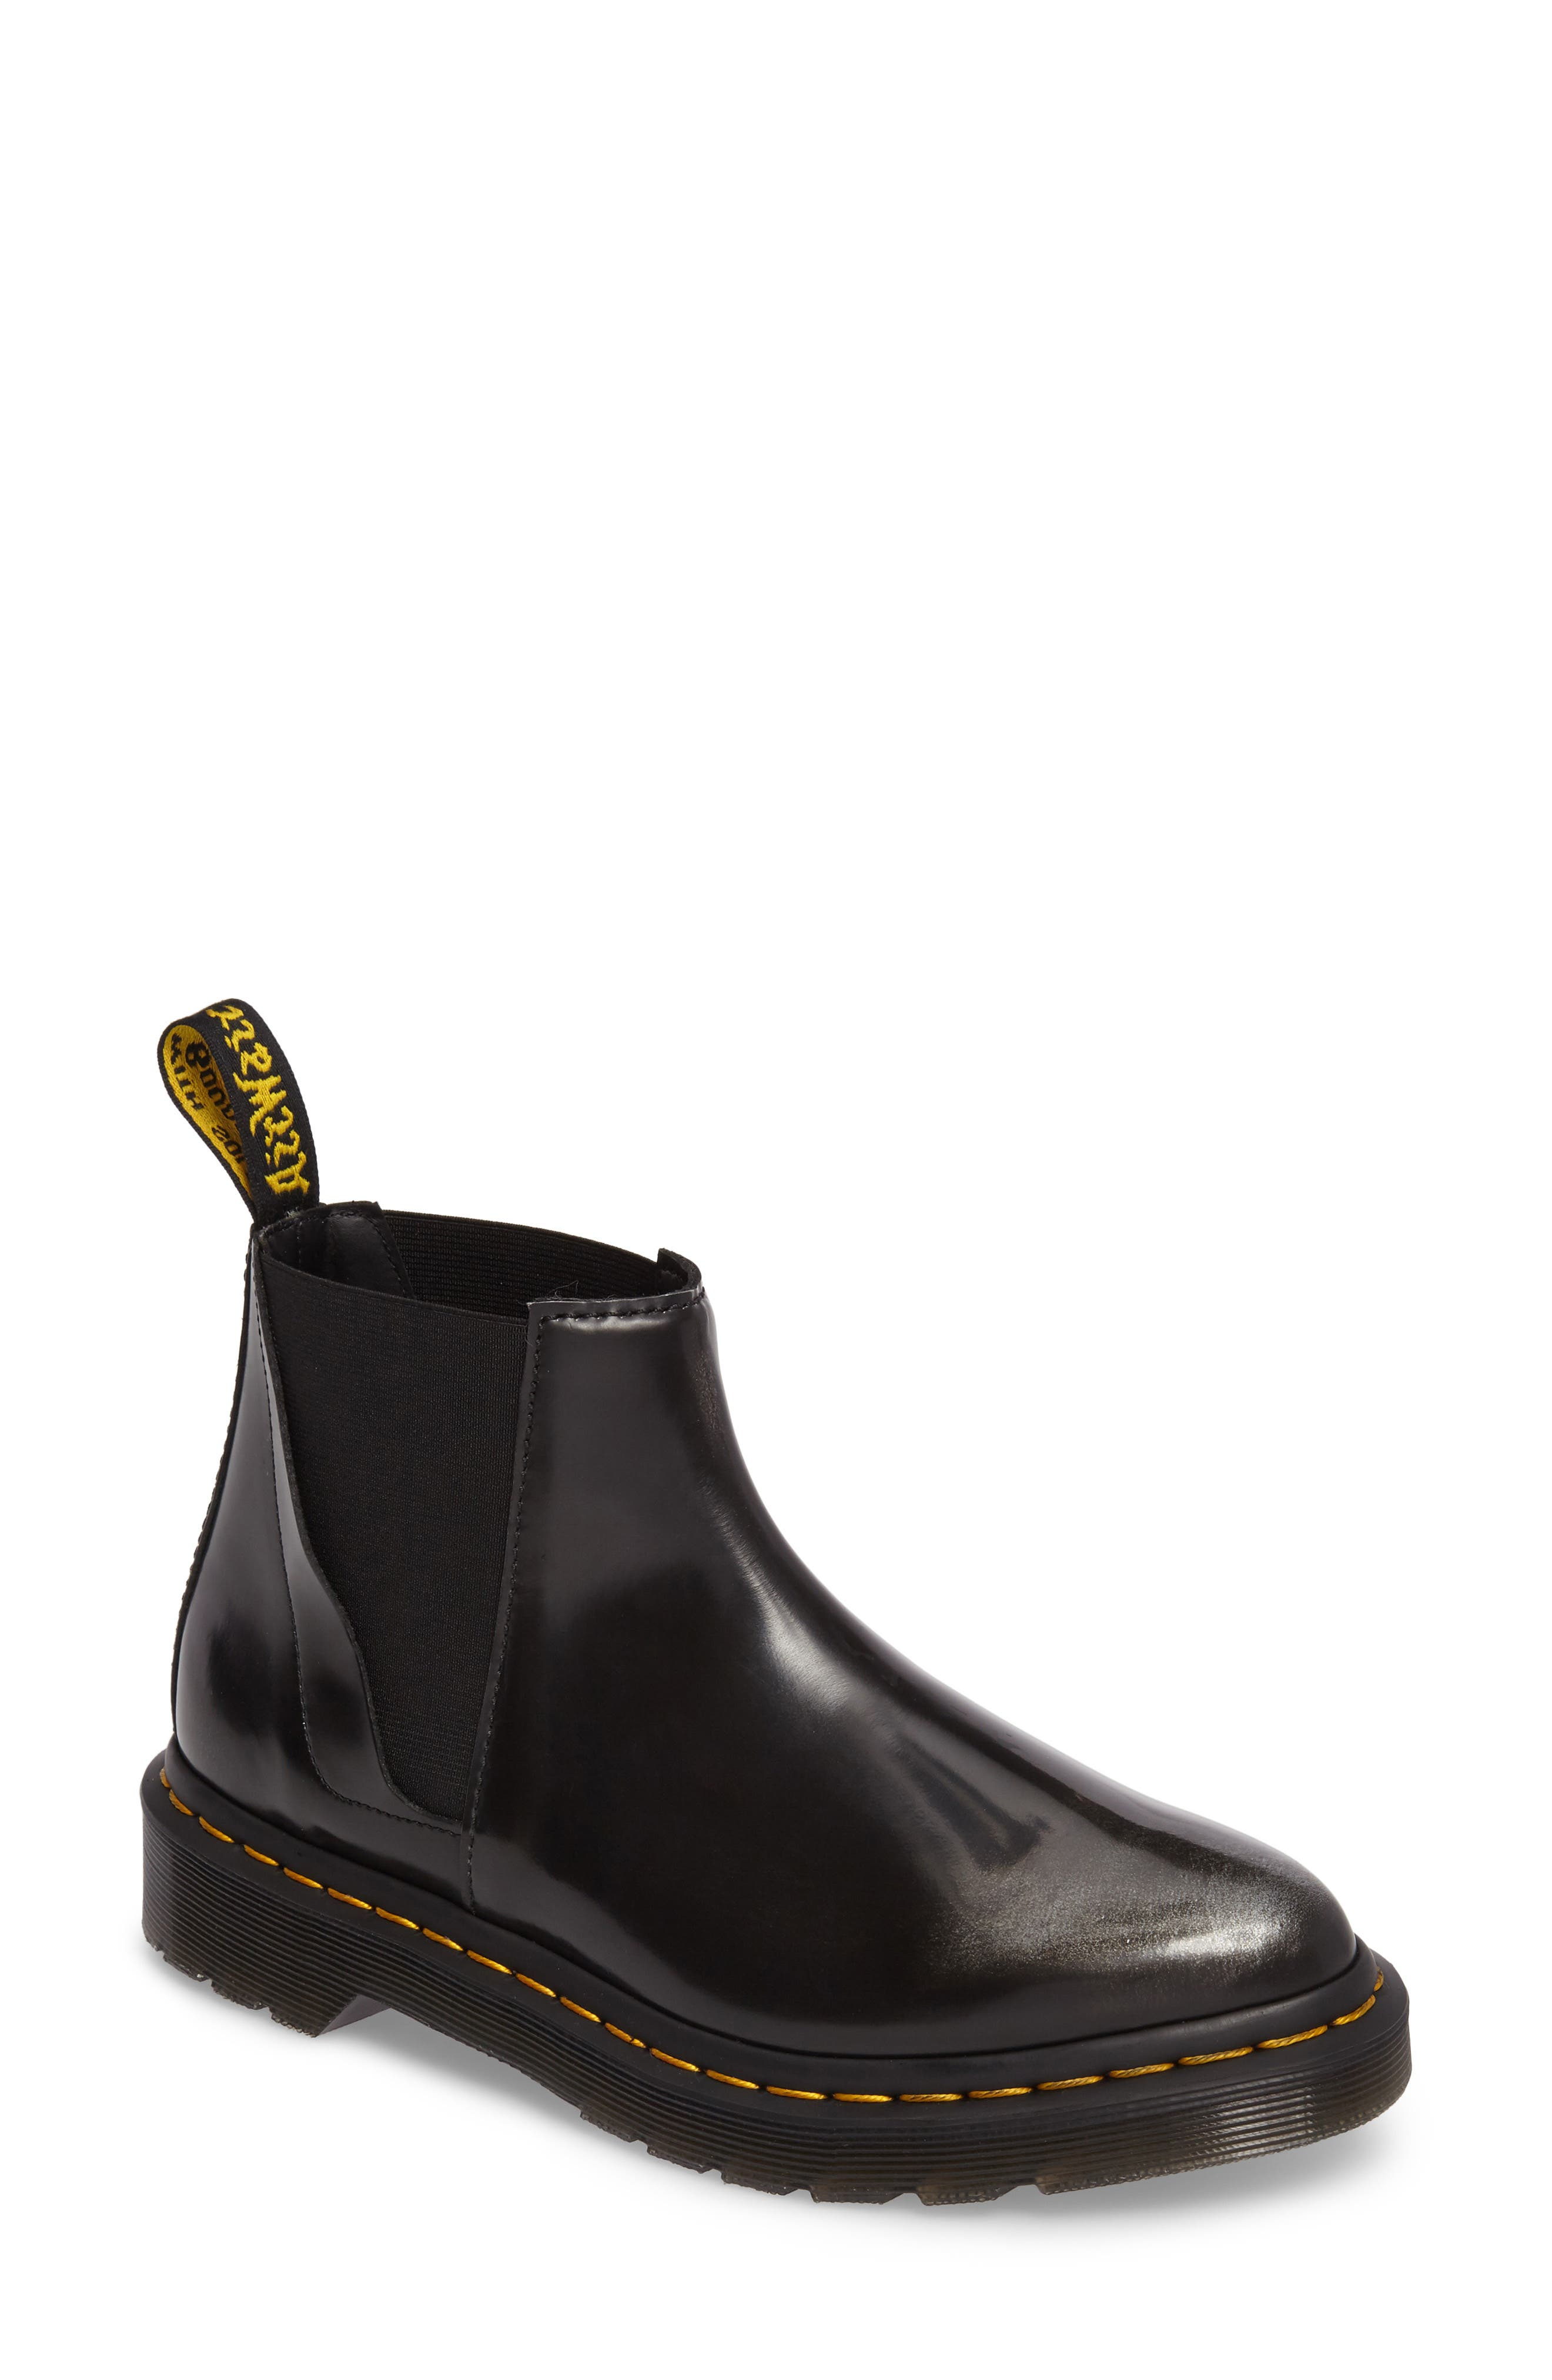 Alternate Image 1 Selected - Dr. Martens Bianca Smooth Bootie (Women)